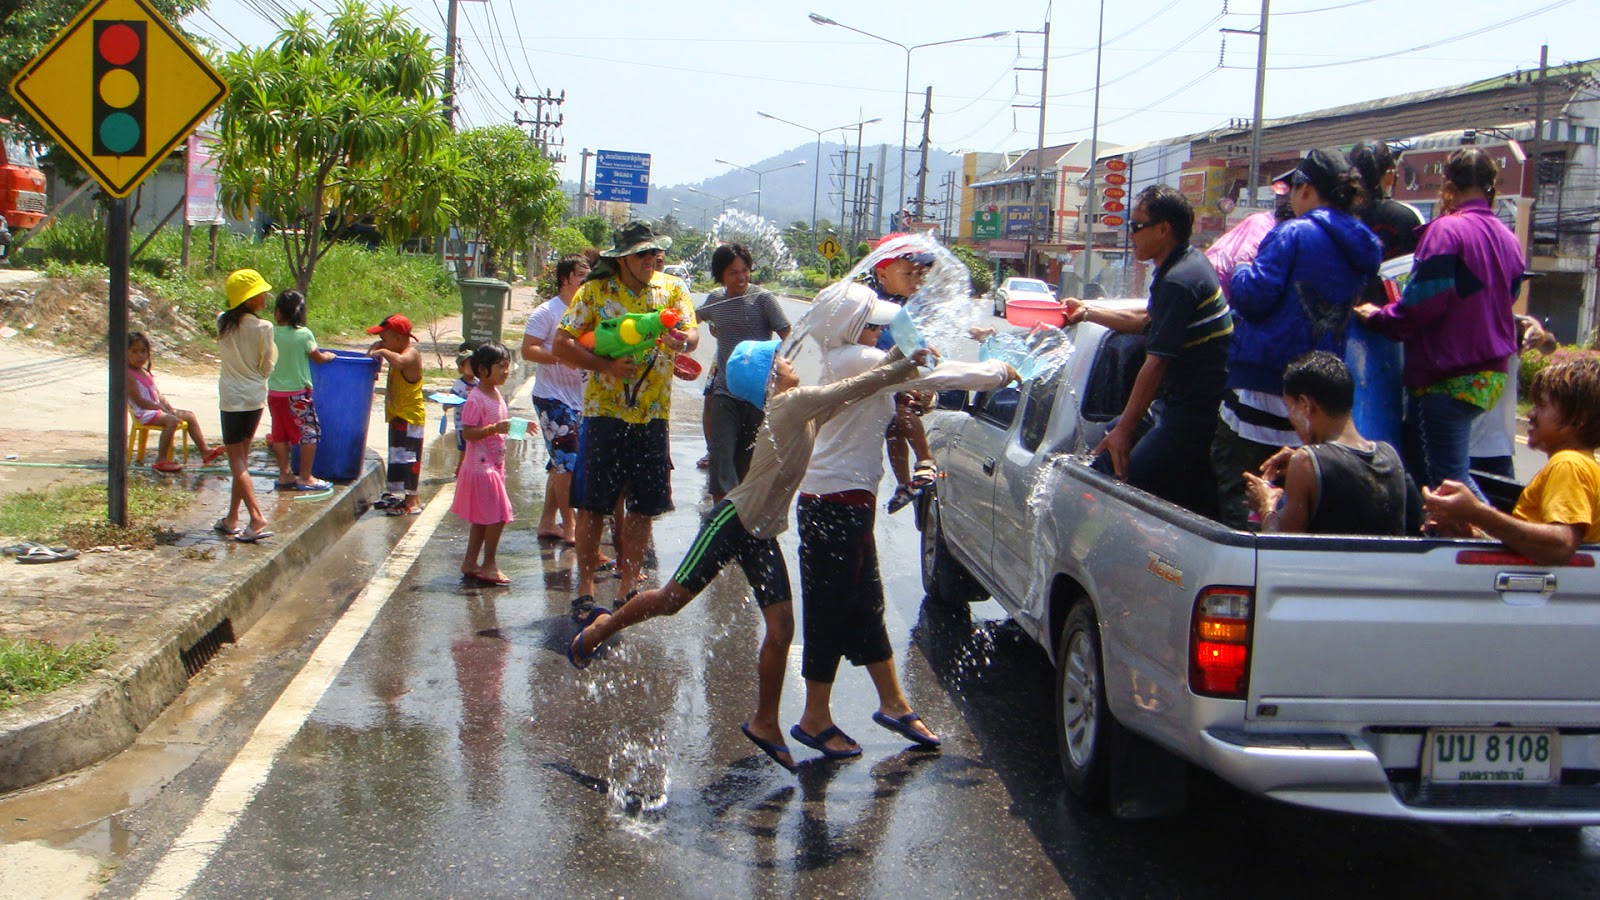 Thailand New Year Day - Songkran Day